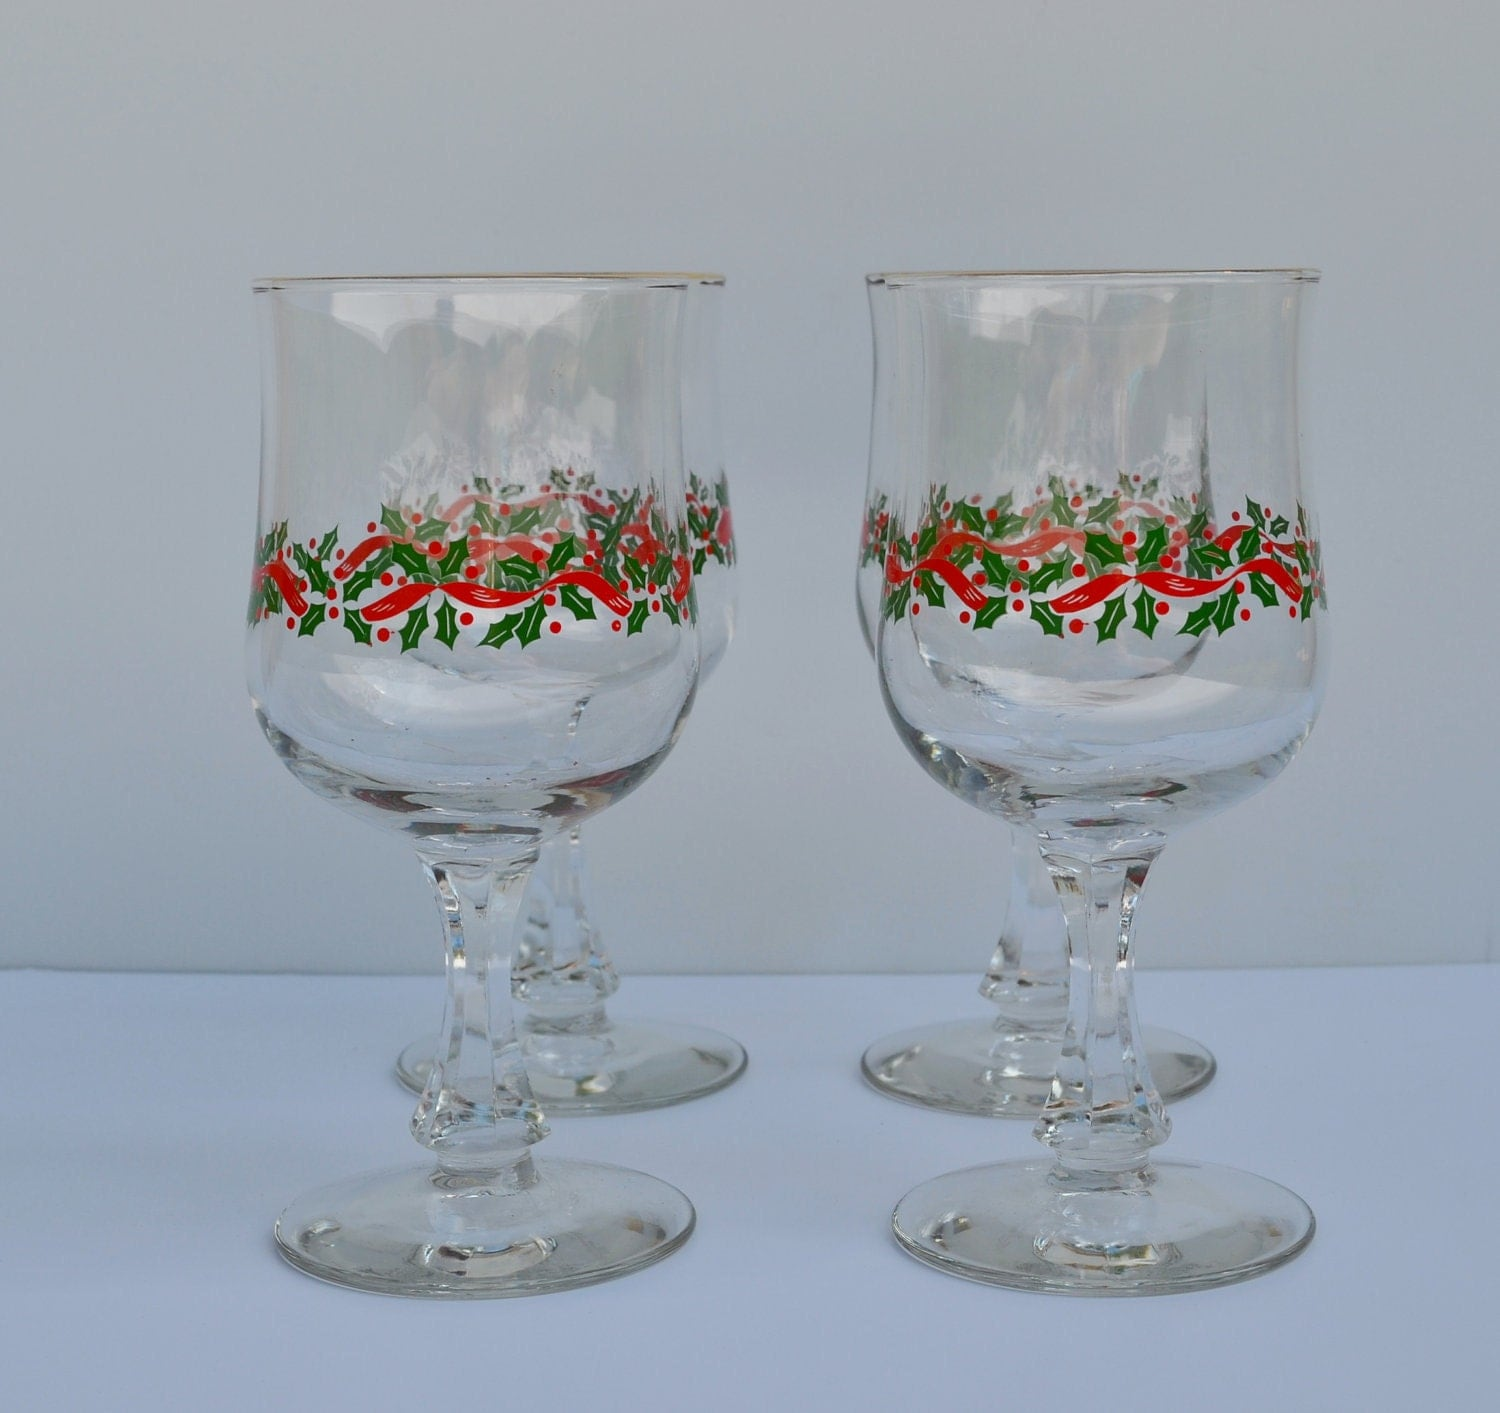 Vintage christmas wine glasses with holly berries vintage for Holiday stemware